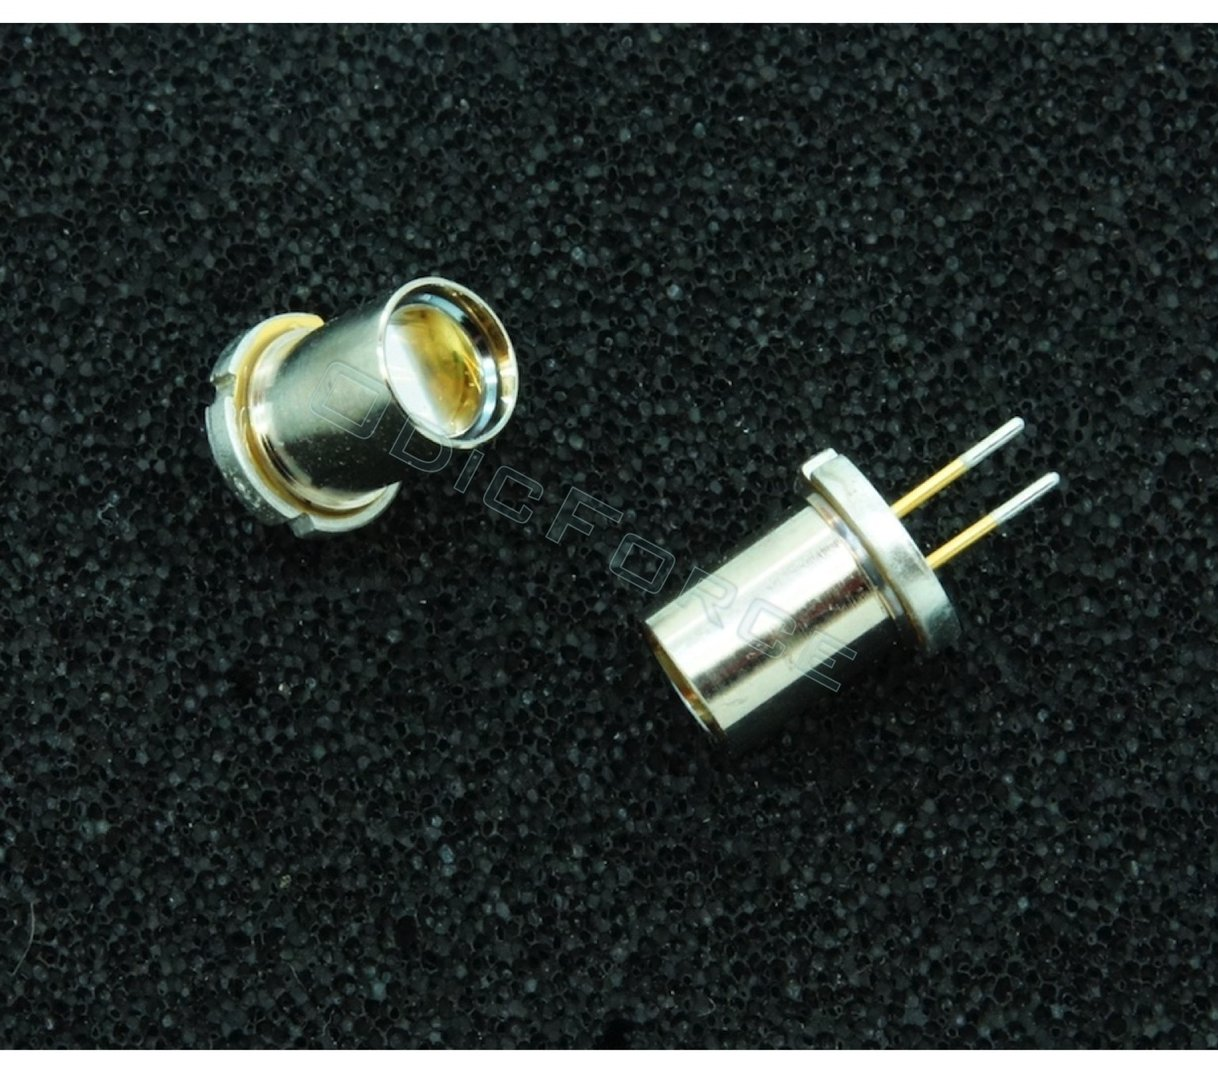 Nichia 3.5W+ 450nm Blue Laser Diode (9mm) NUBM05 (new, extracted with tinned pins and ball lens)